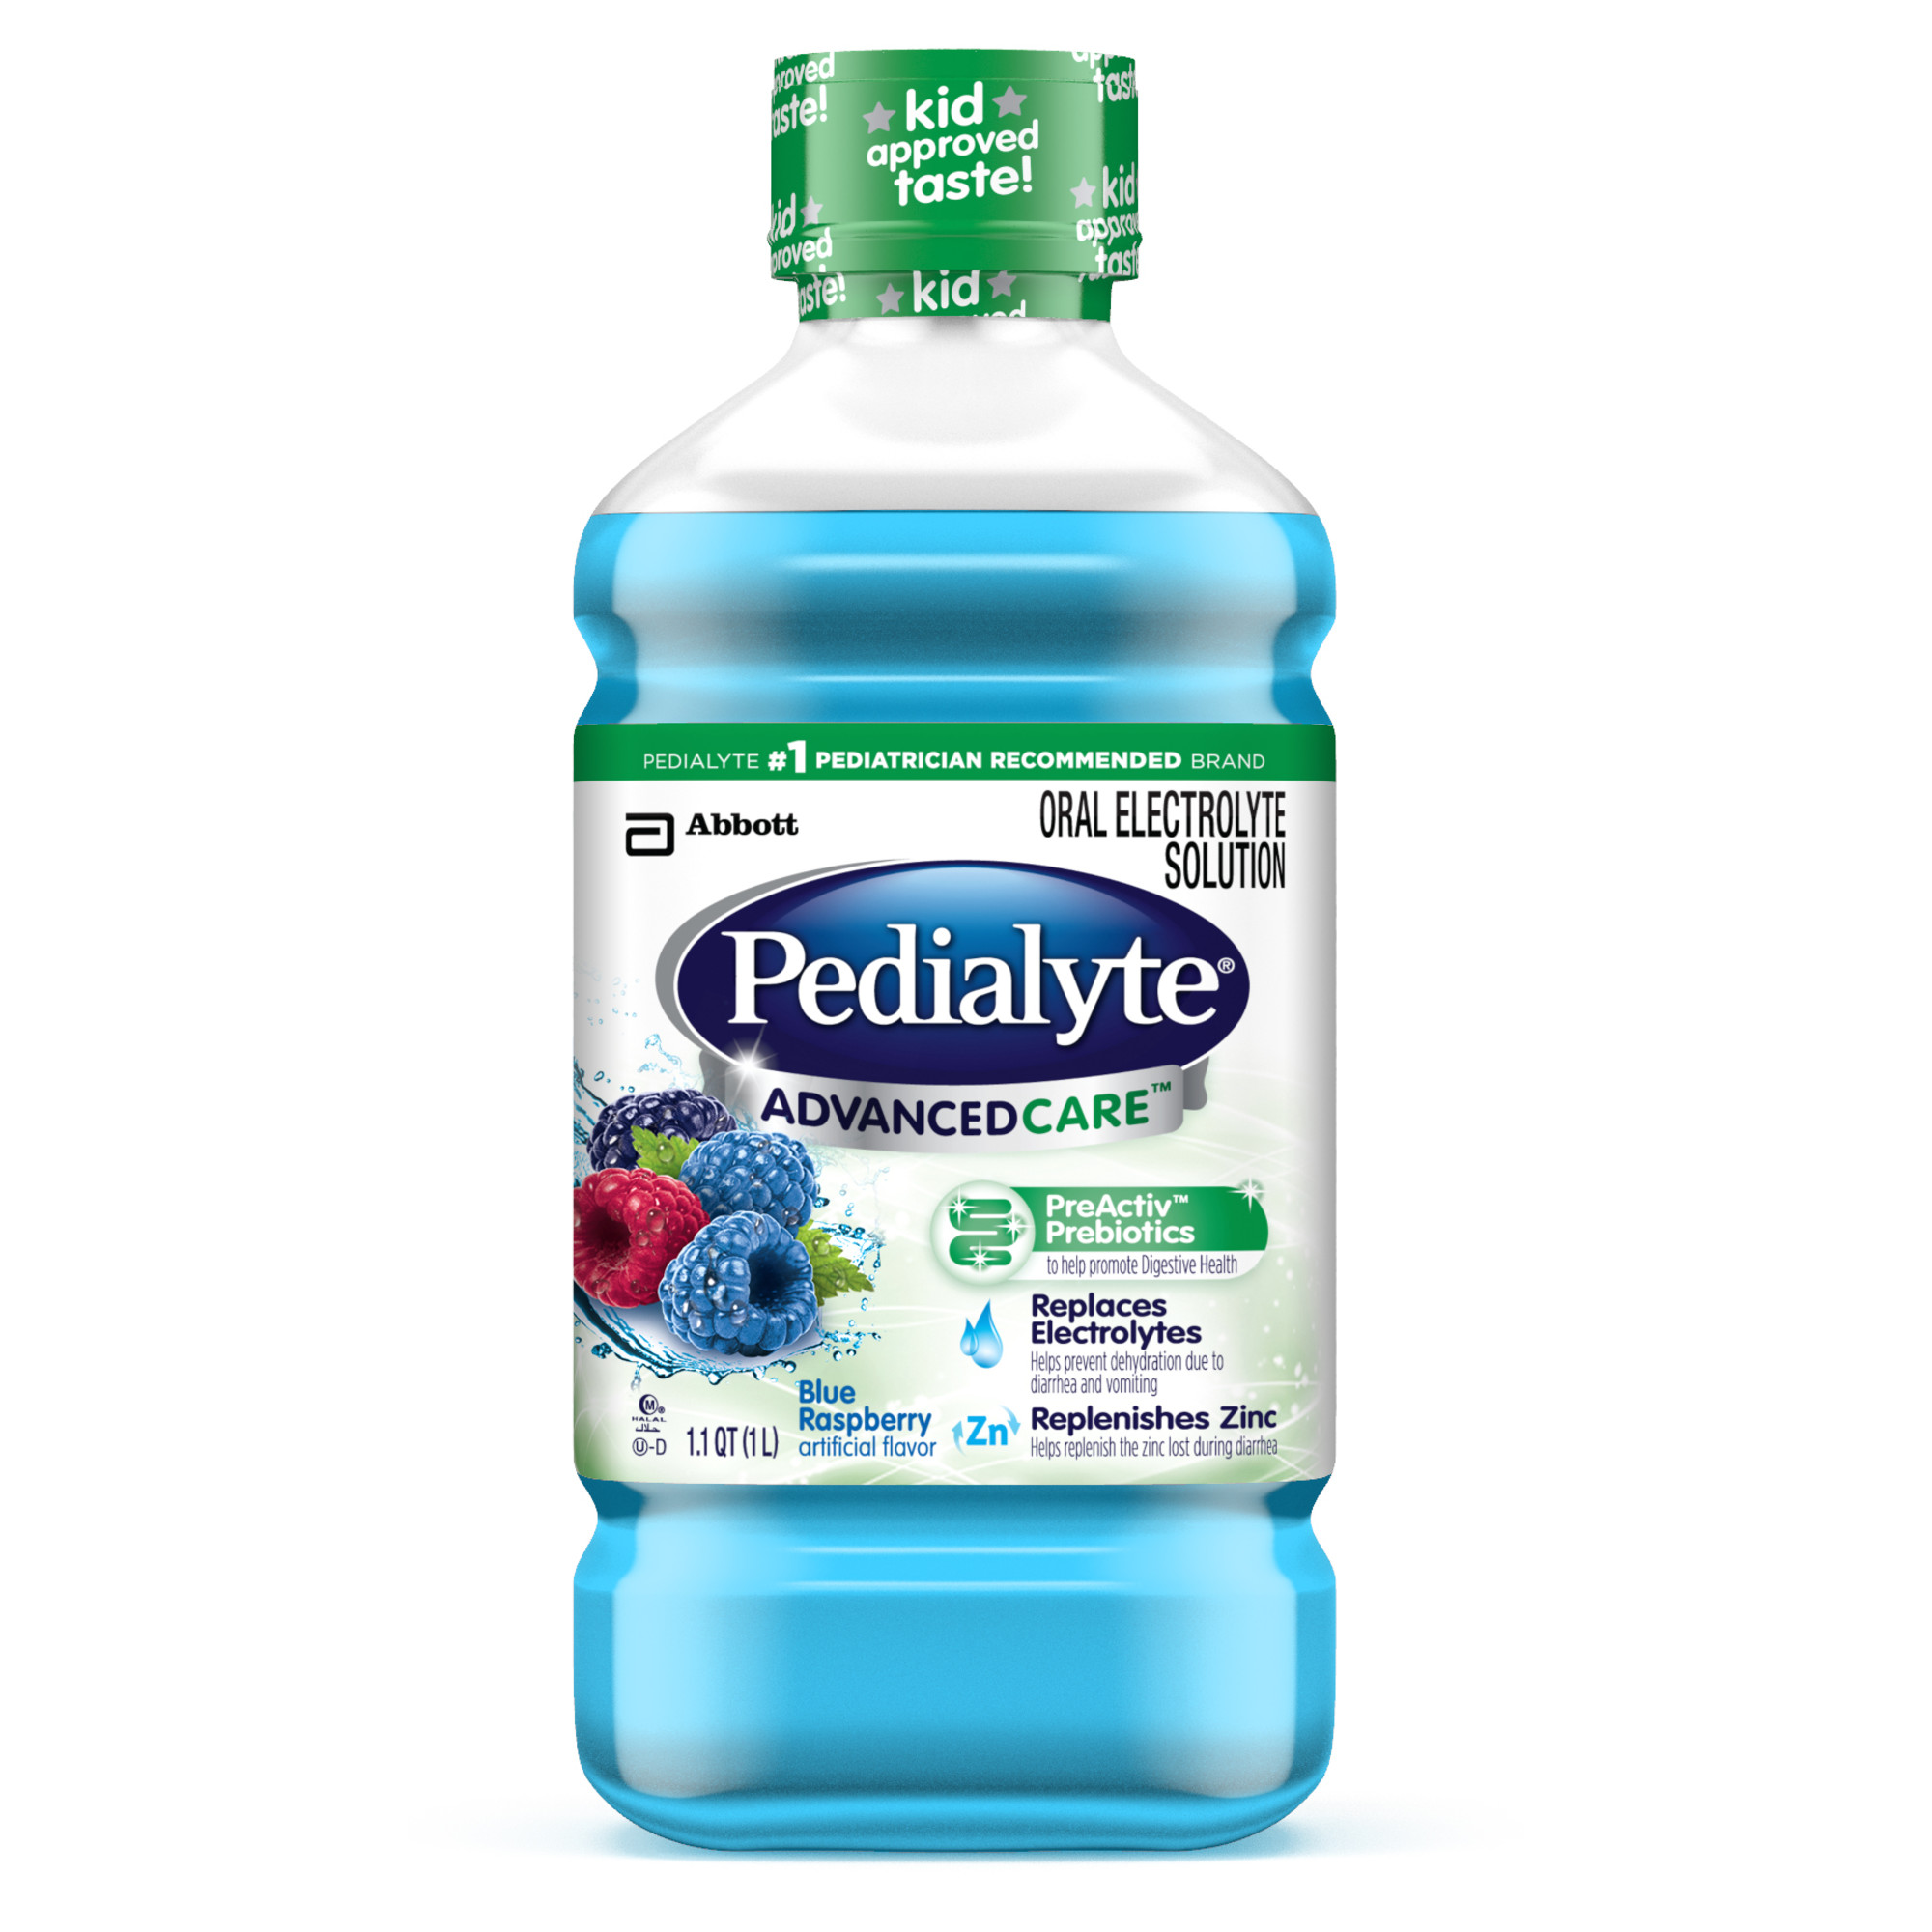 Pedialyte Advanced Care Oral Electrolyte Solution, Blue Raspberry, 1-L